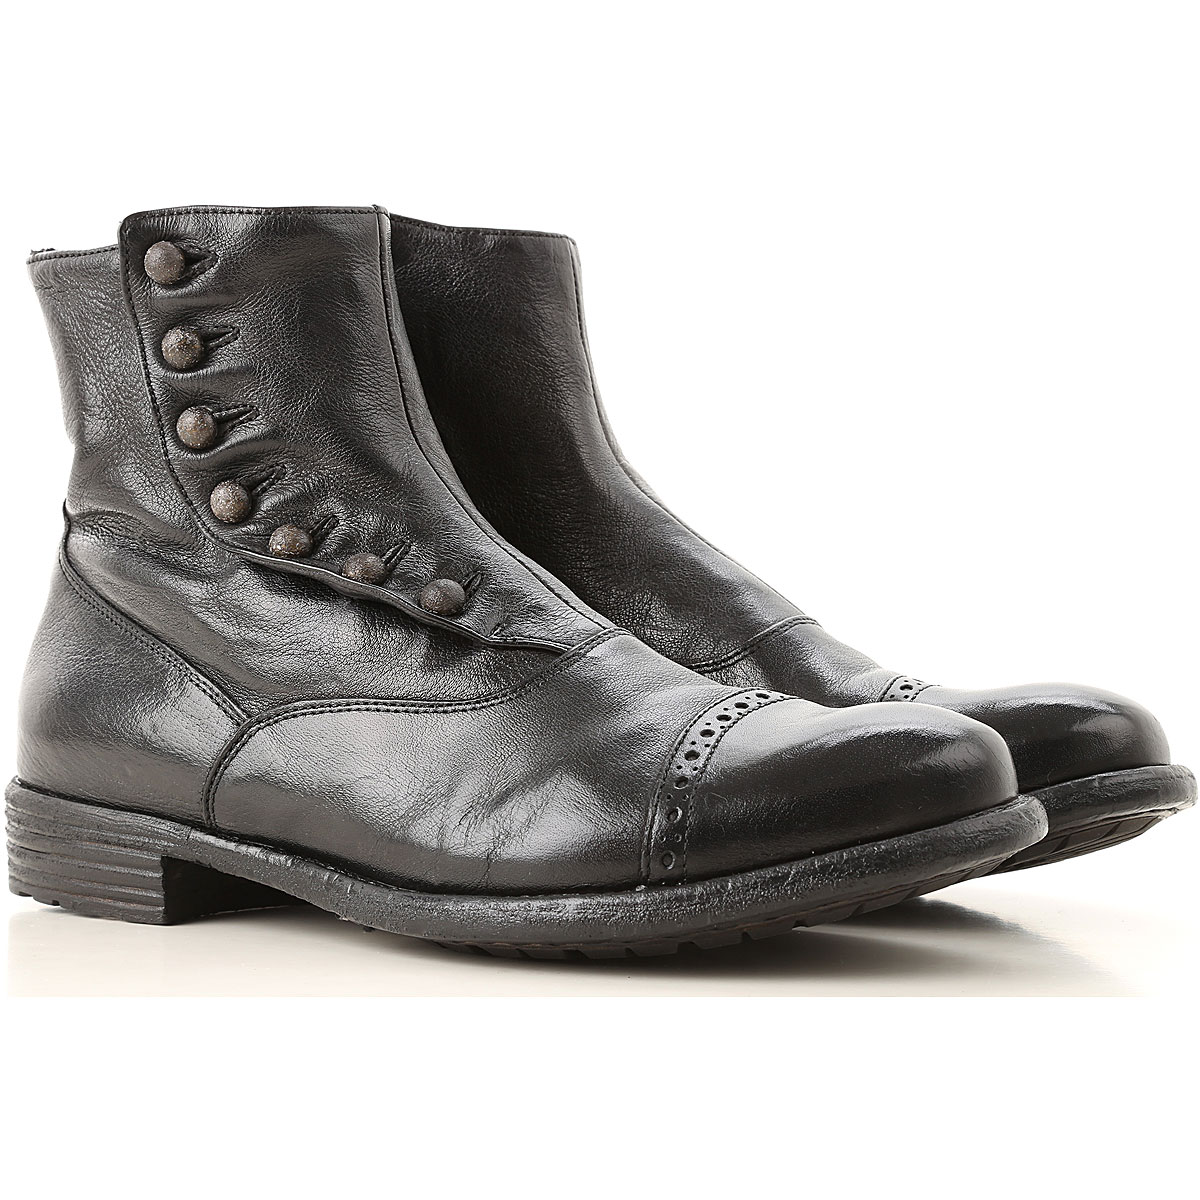 Image of Officine Creative Boots for Women, Booties, Ebony, Leather, 2017, 6 7 9